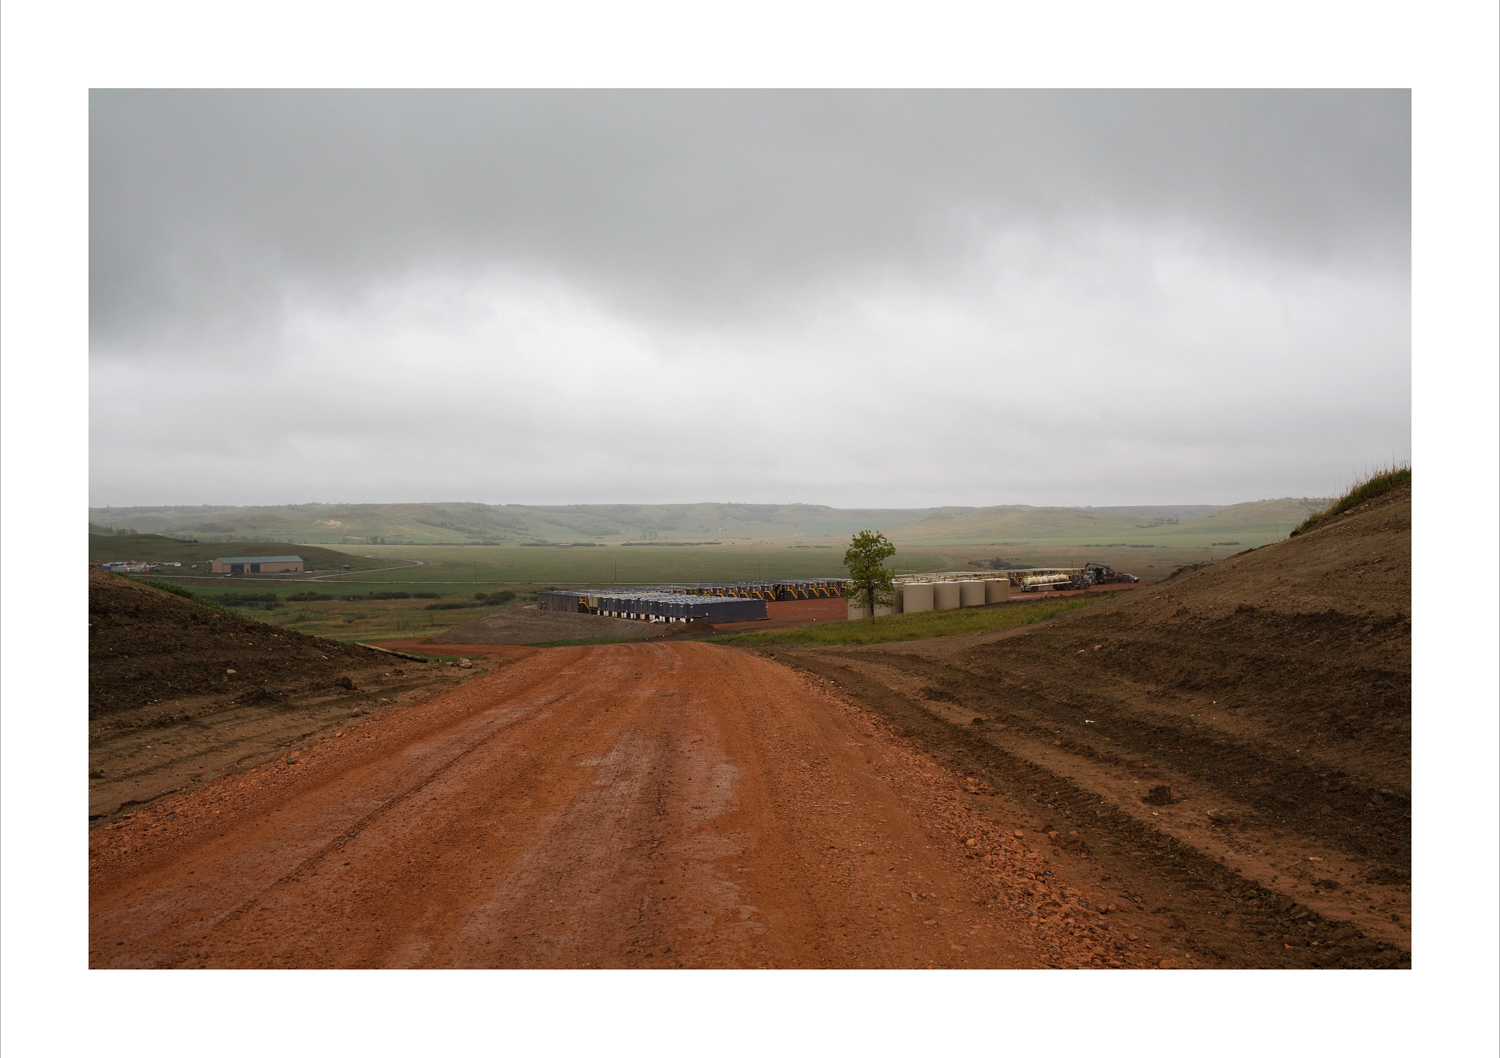 _MG_4053 Fracking site south of Stanley, ND expanded-20x3-print.jpg